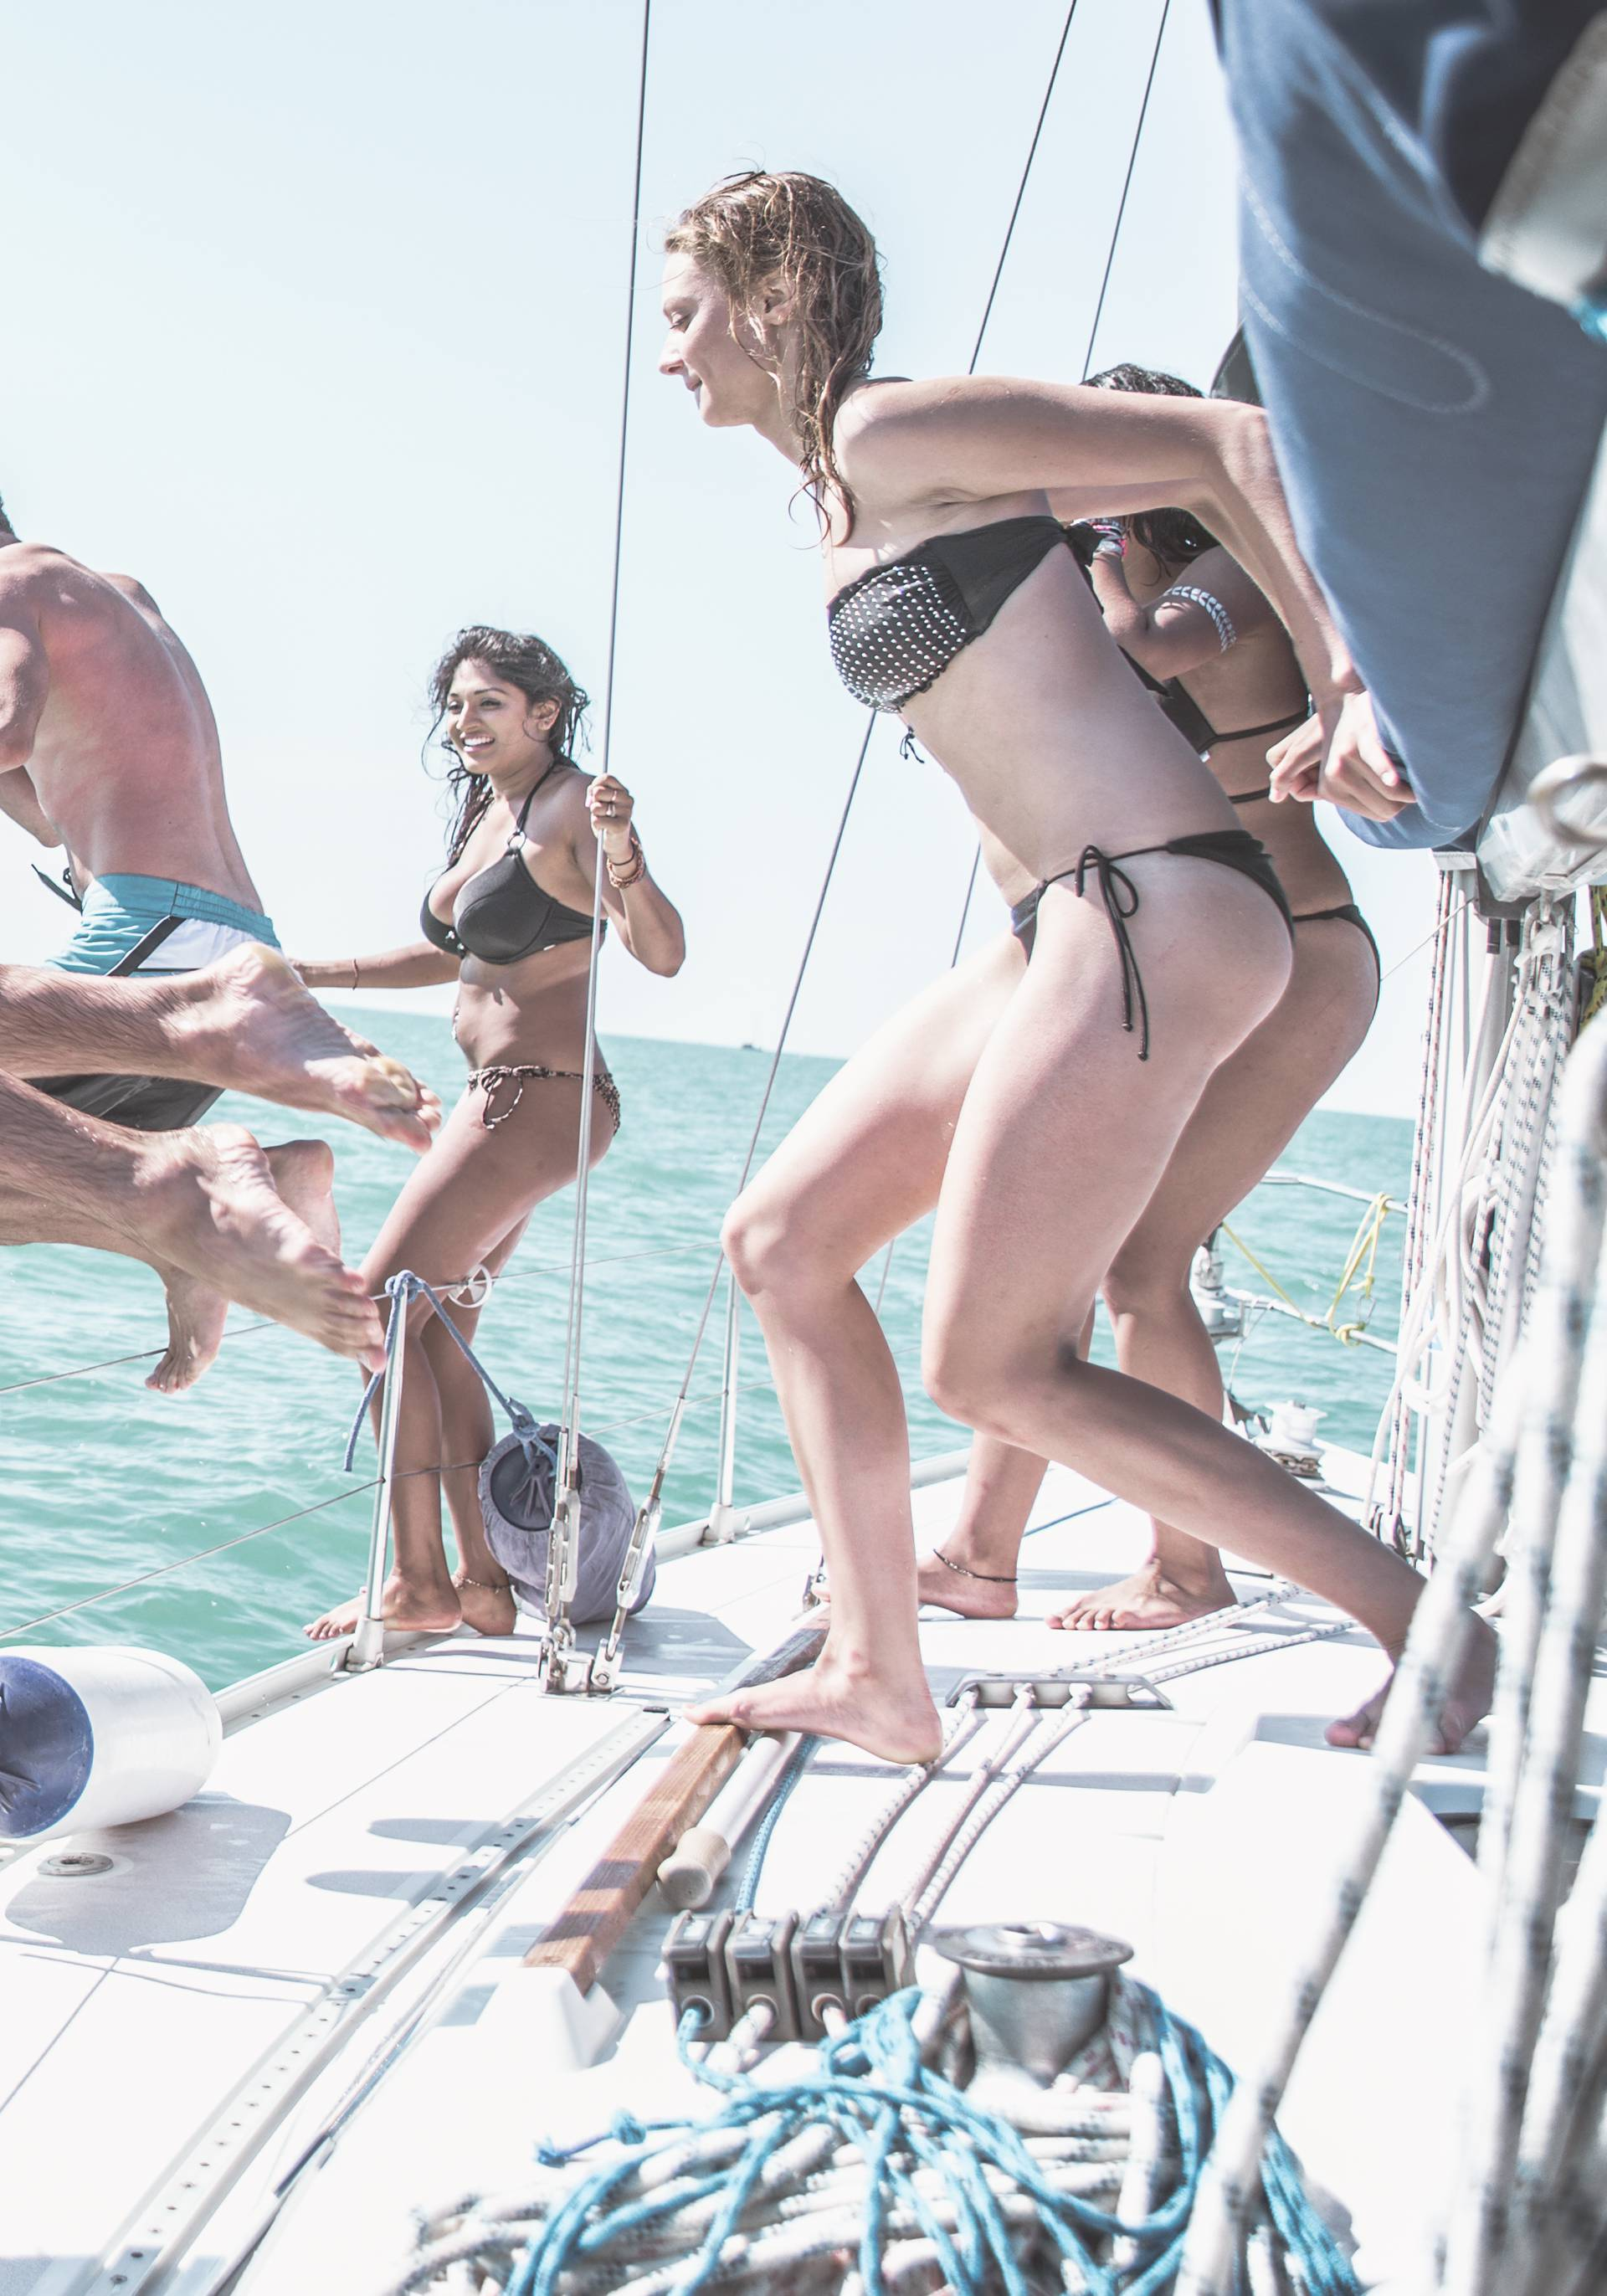 Friends jumping in the water from the boat